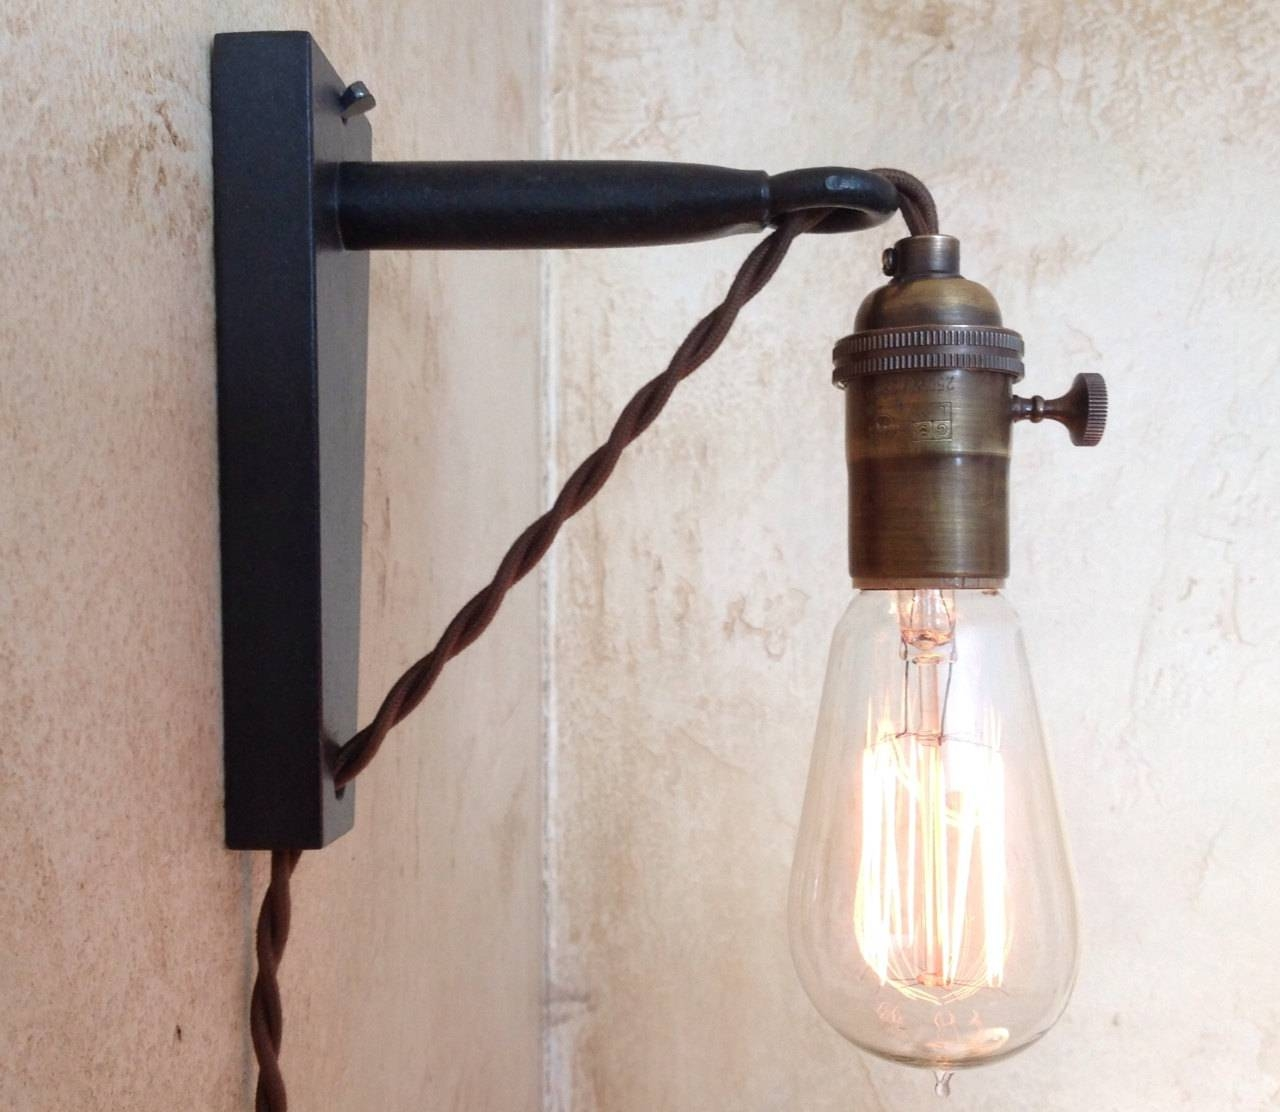 Modern Plug In Hanging Lamp | Med Art Home Design Posters In Hanging Plugin Pendant Lights (View 14 of 15)